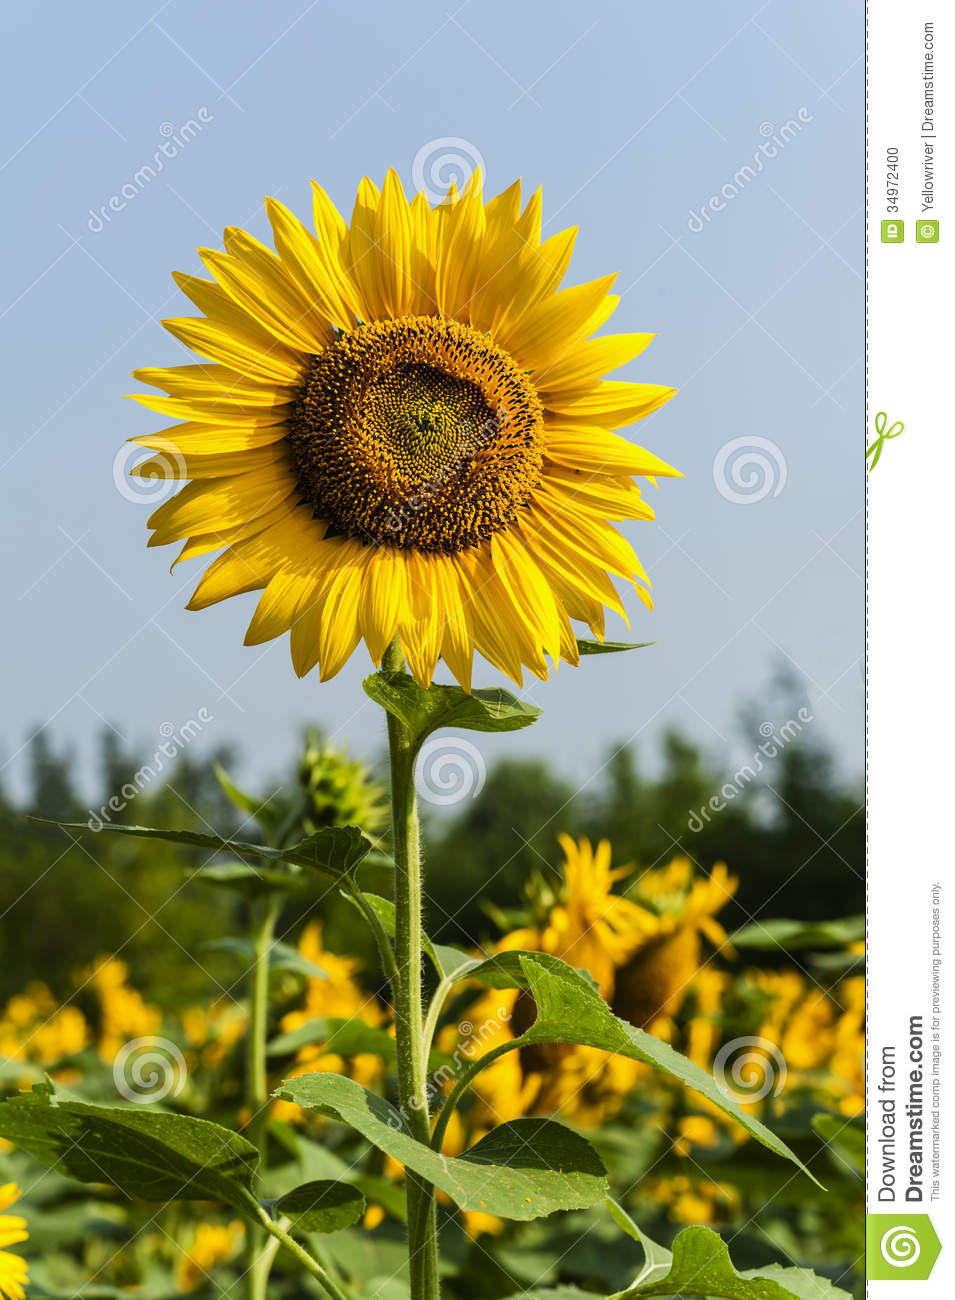 sunflower field picture blooming - photo #20